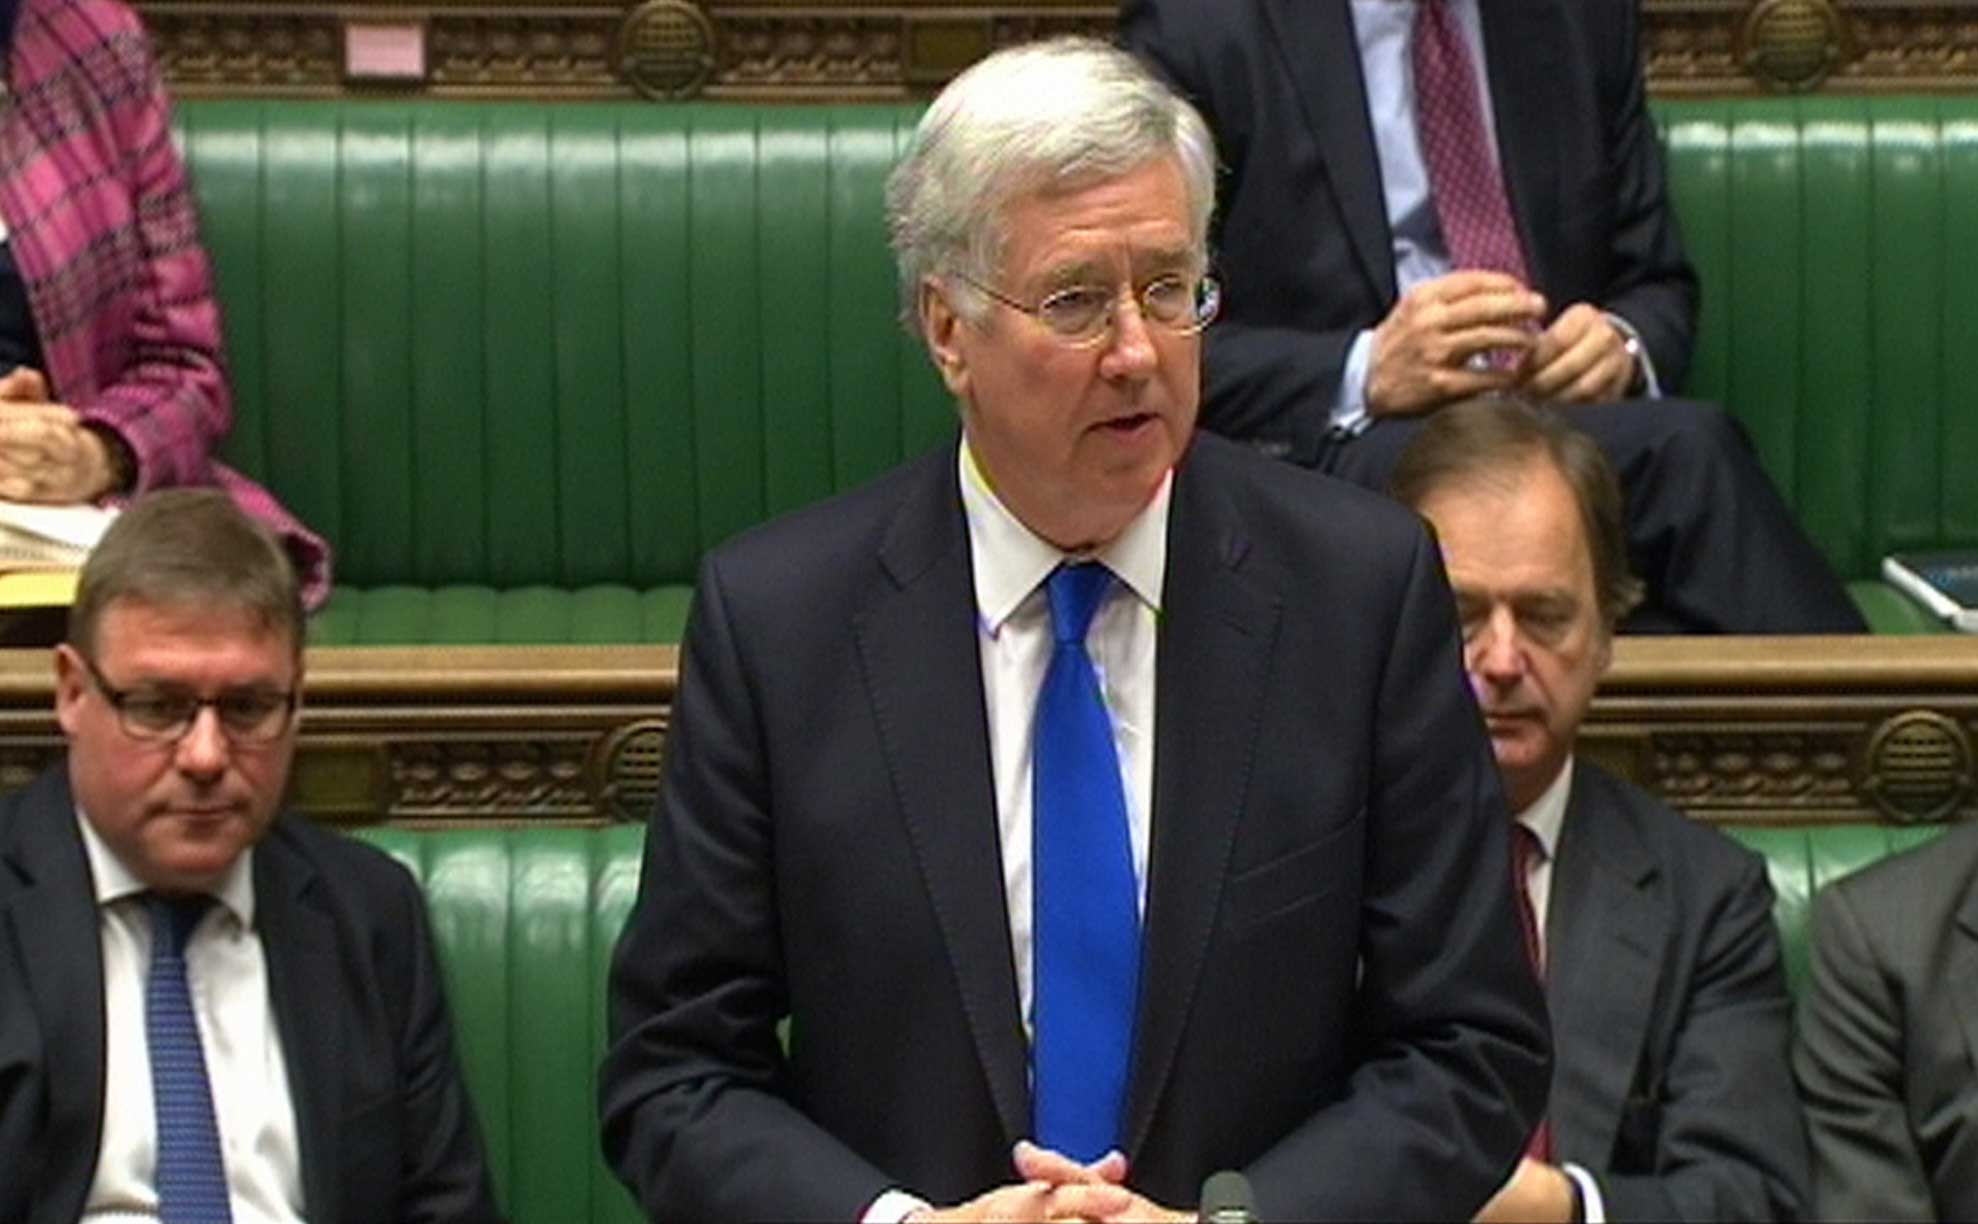 Defence Secretary Michael Fallon makes a statement to MPs in the House of Commons saying that Britain is to bolster the defences of the Falklands, in London on Tuesday March 24, 2015.